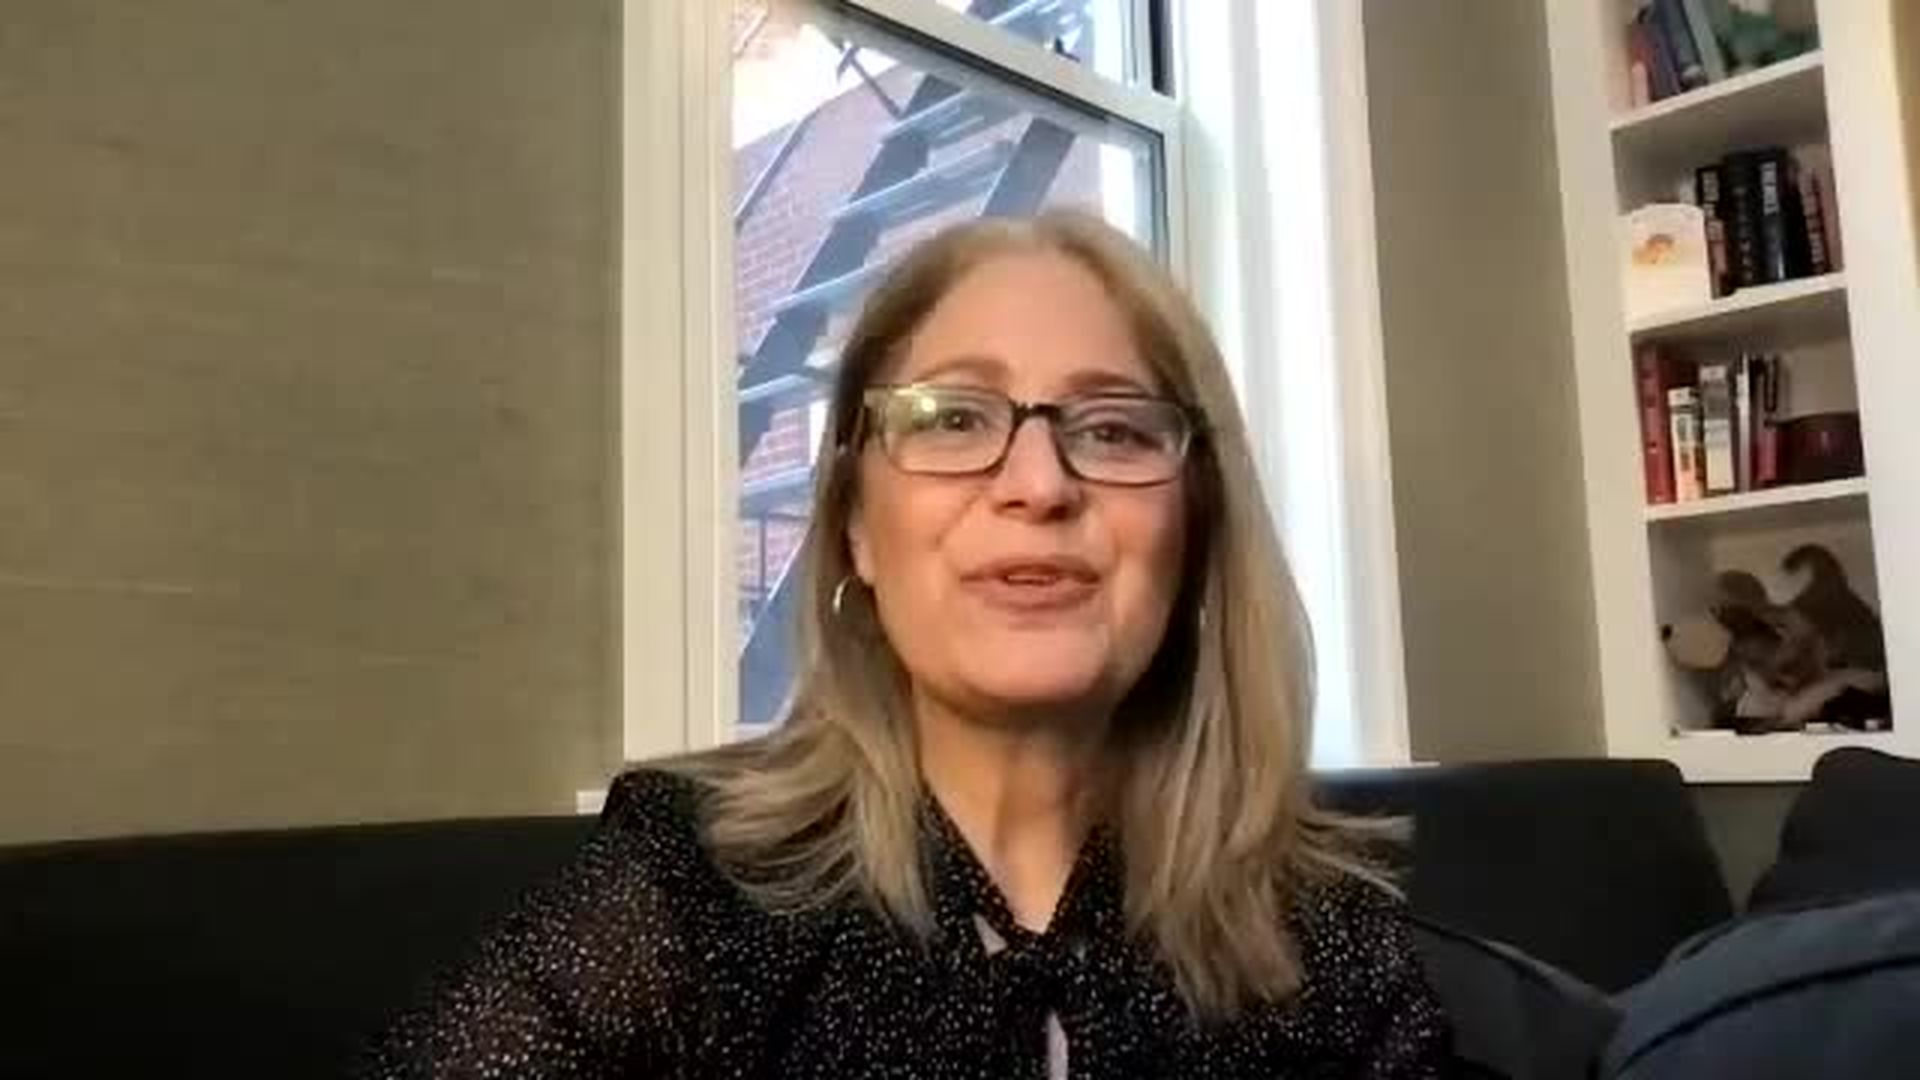 Leslie Boghosian Murphy | Democratic Candidate for NYC Council District 3